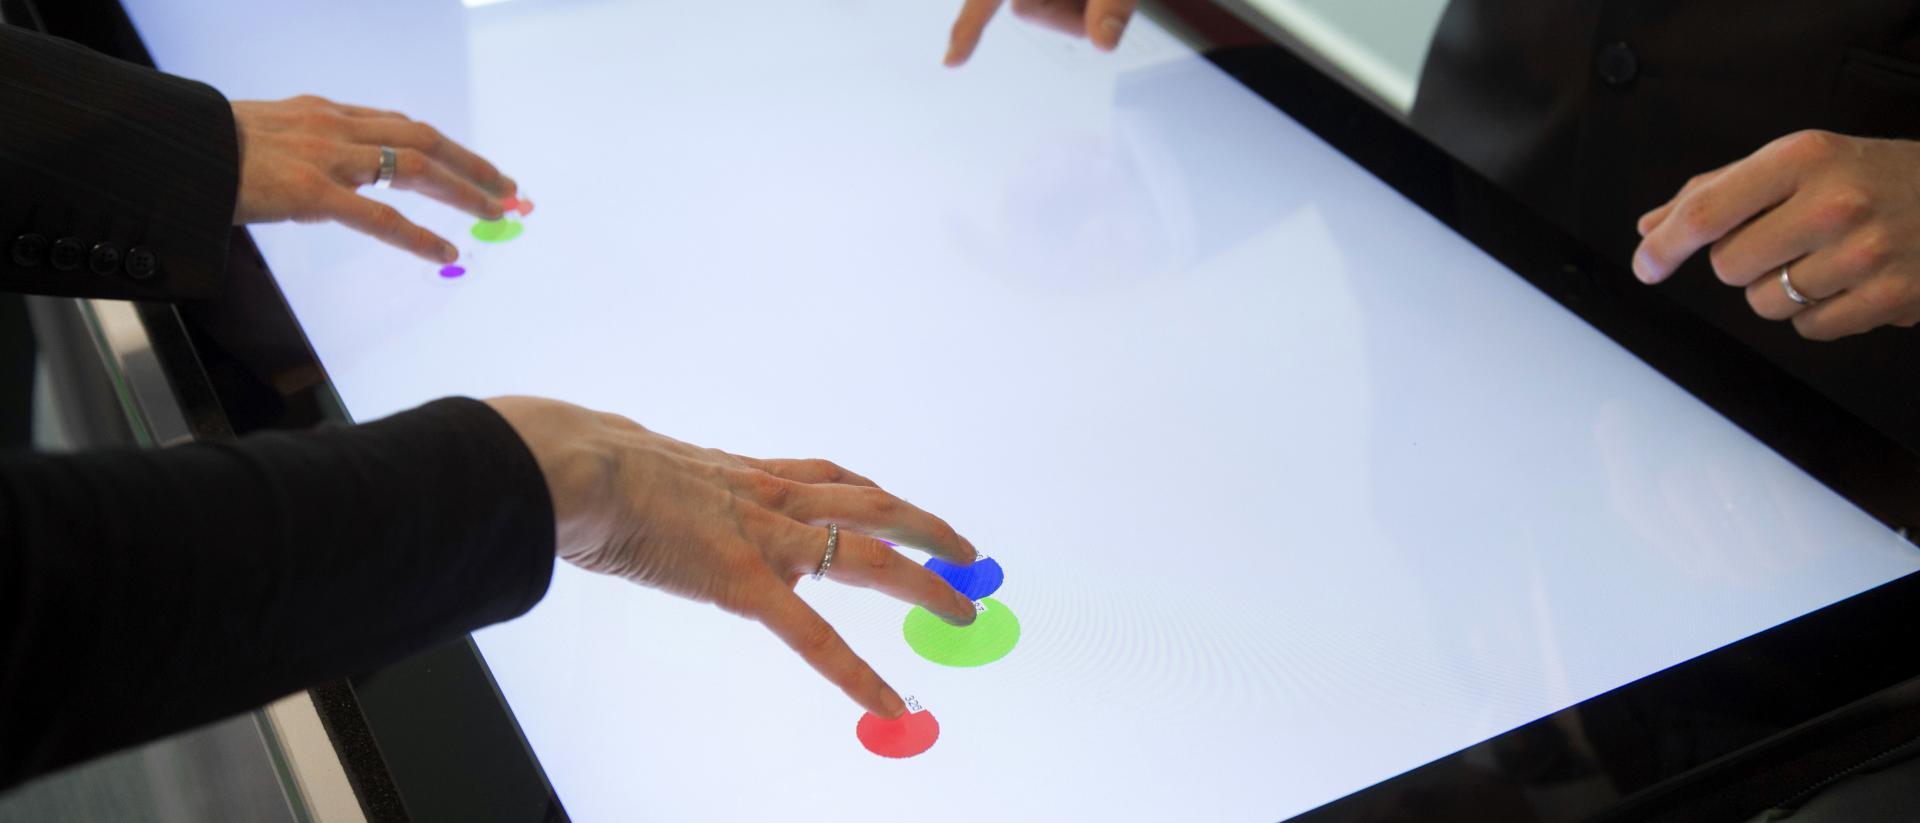 AGC's TIREXtreme cover glass for large multi-touch screens